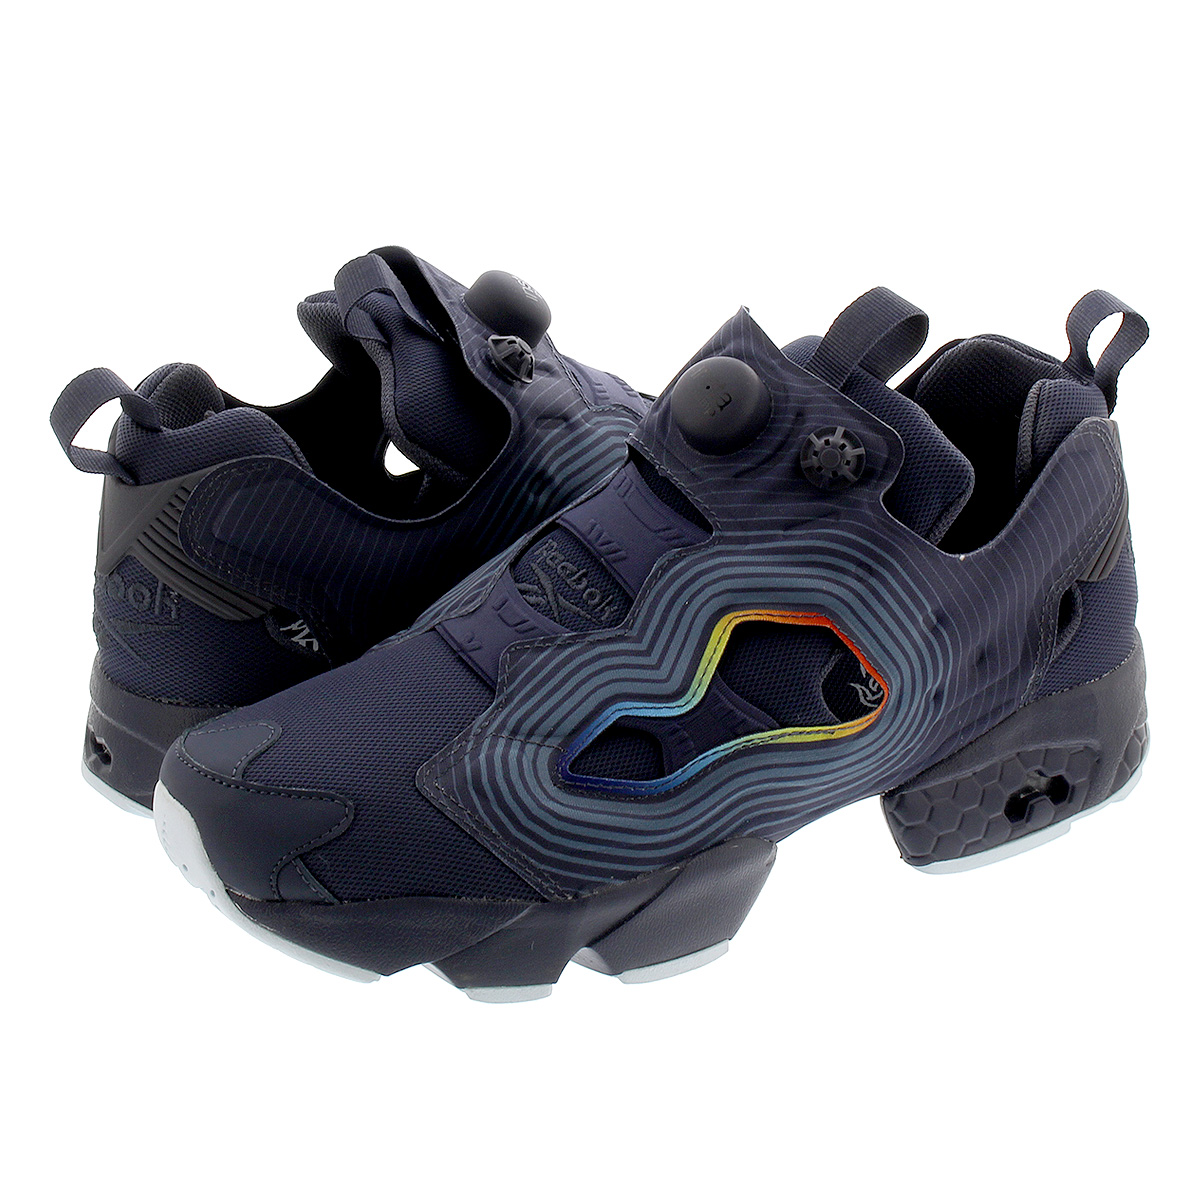 【スーパーSALE】Reebok INSTA PUMP FURY OG NM リーボック インスタ ポンプ フューリー OG NM HERITAGE NAVY/GLASS BLUE/HERITAGE NAVY fv4503